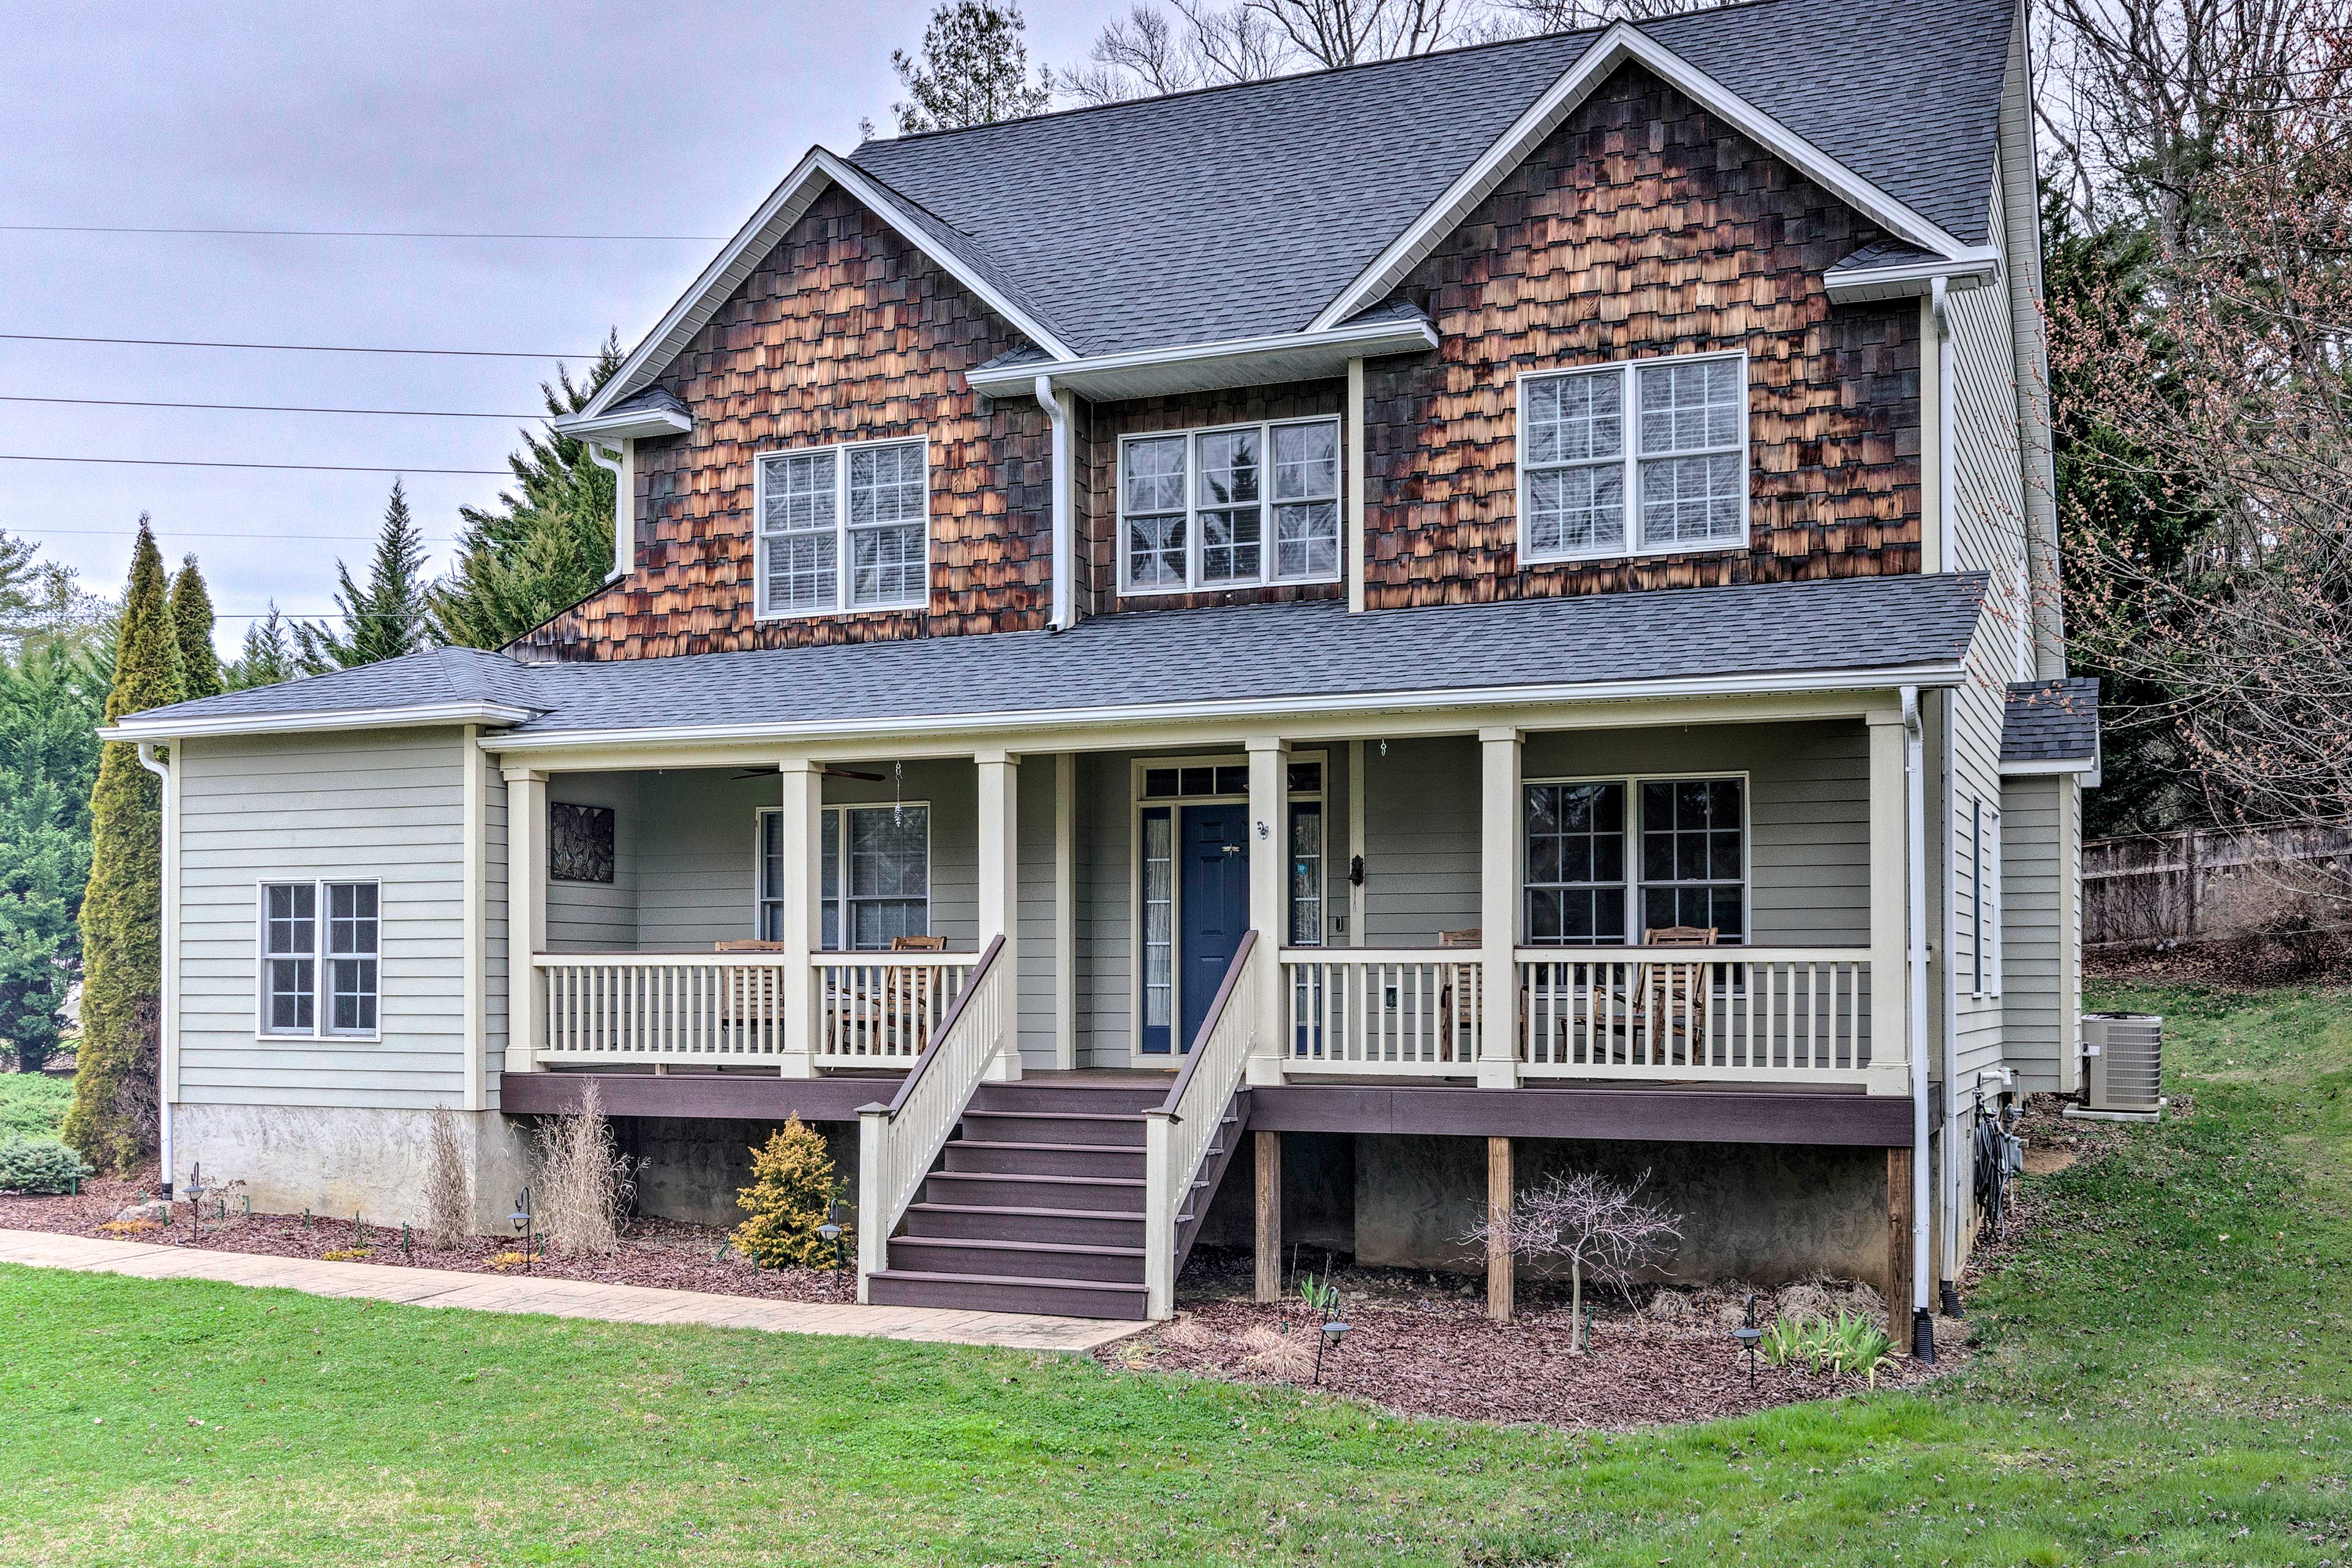 This house is just 15 miles from downtown Asheville!